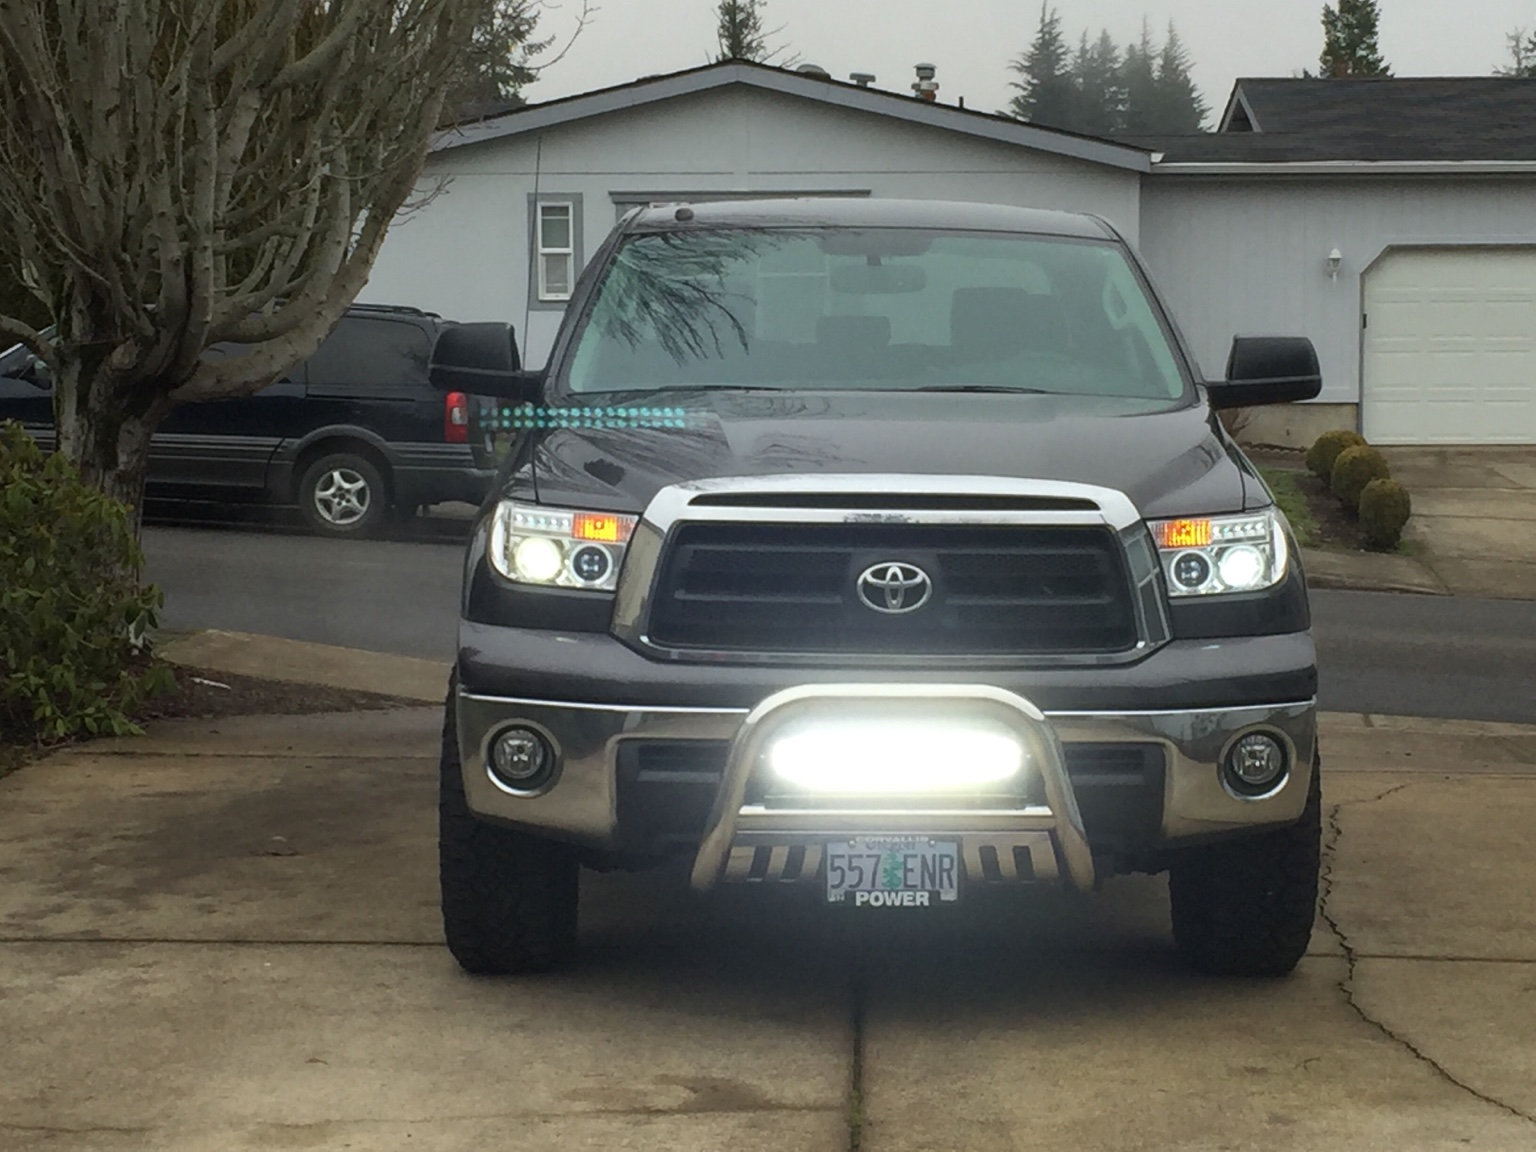 Bull bar with 22 opt 7 led light bar i just installed a bull bar skid plate combo on my 2012 tundra i also install a 22 led light bar by opt 7 10000 lumens of light me up fun aloadofball Choice Image